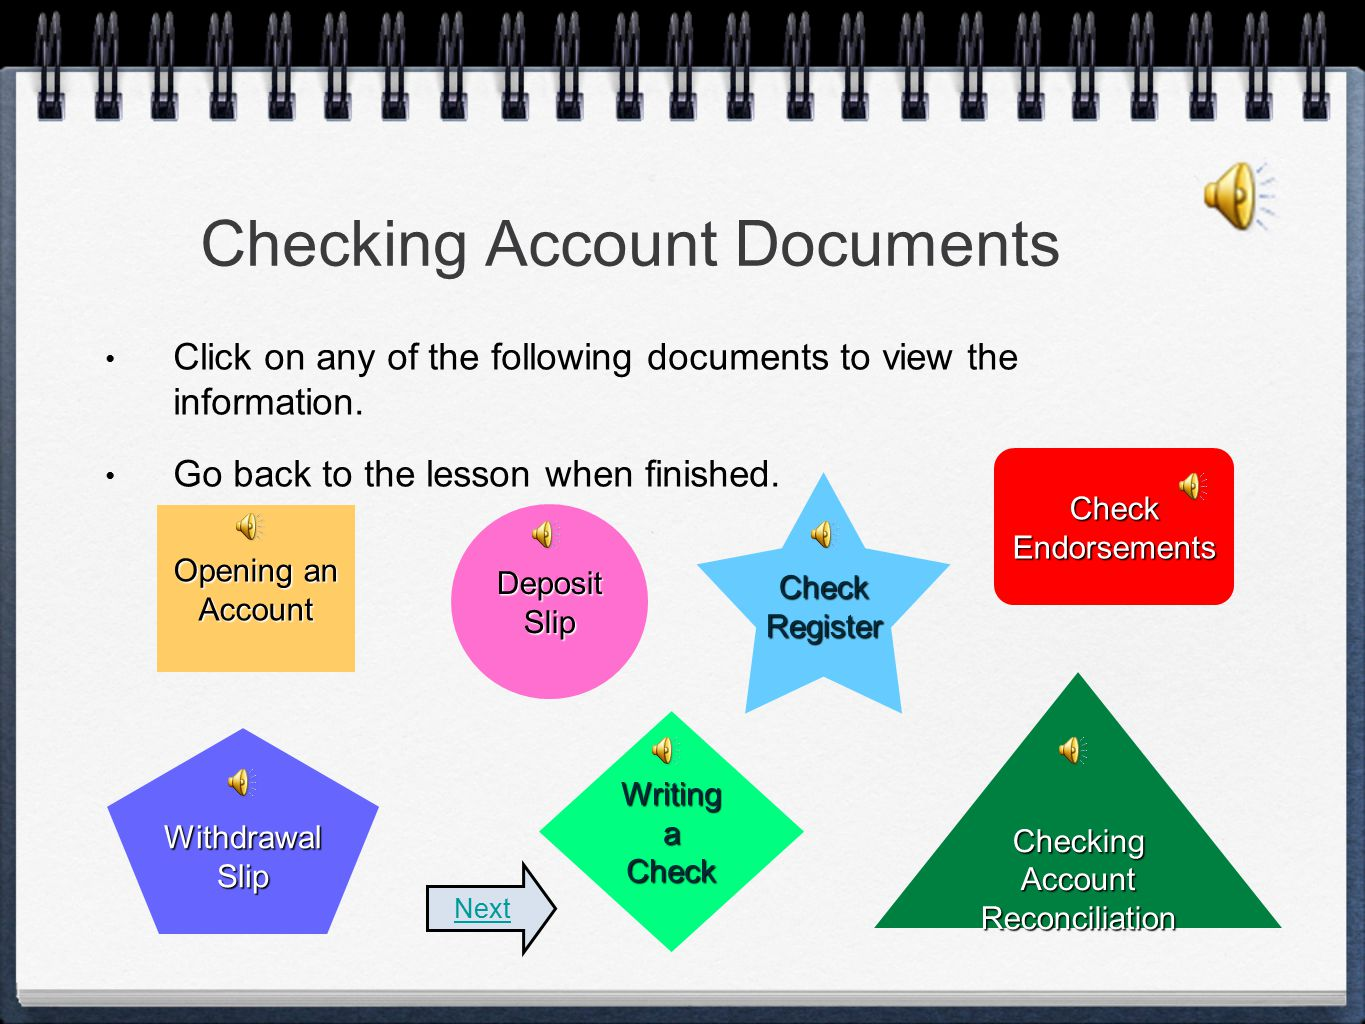 Checking Account Documents